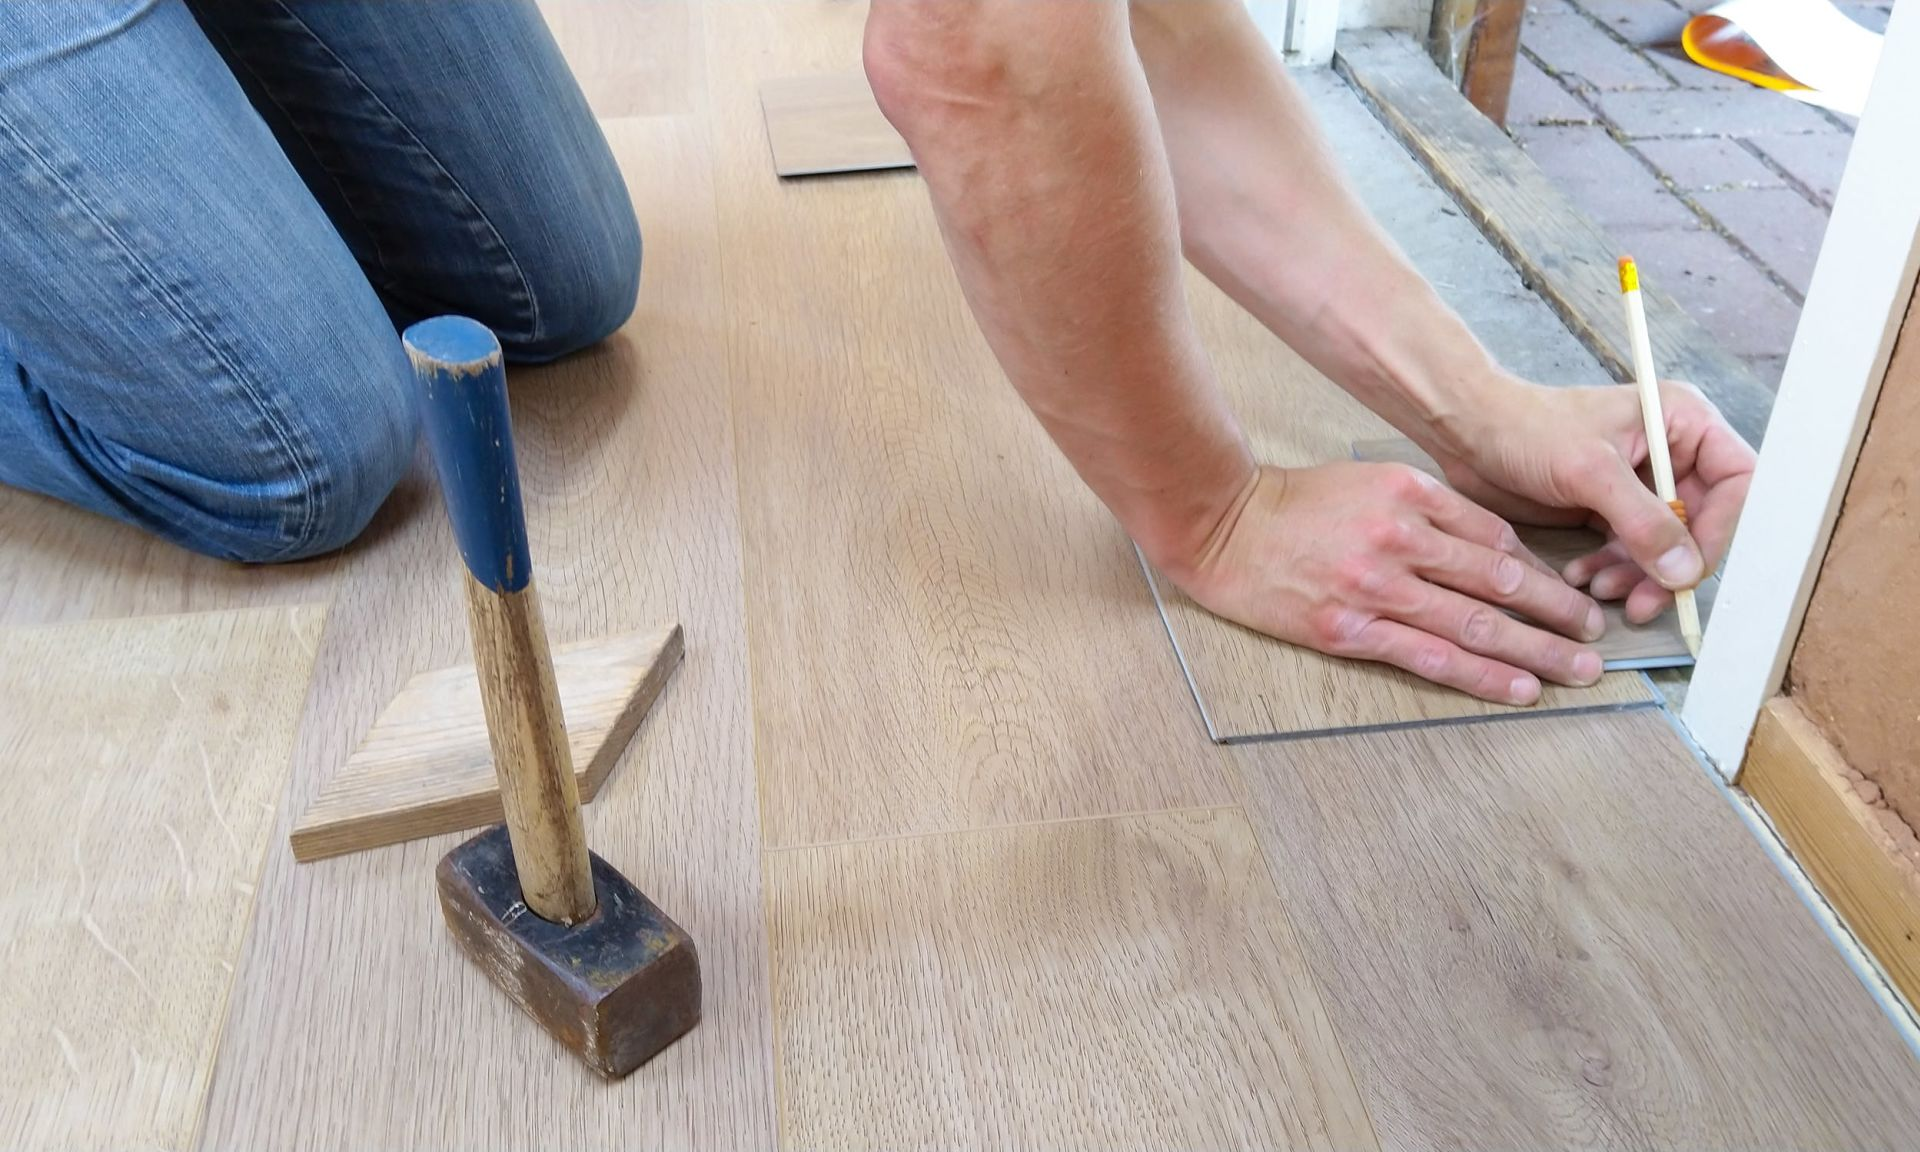 5 Renovations that we need to Avoid